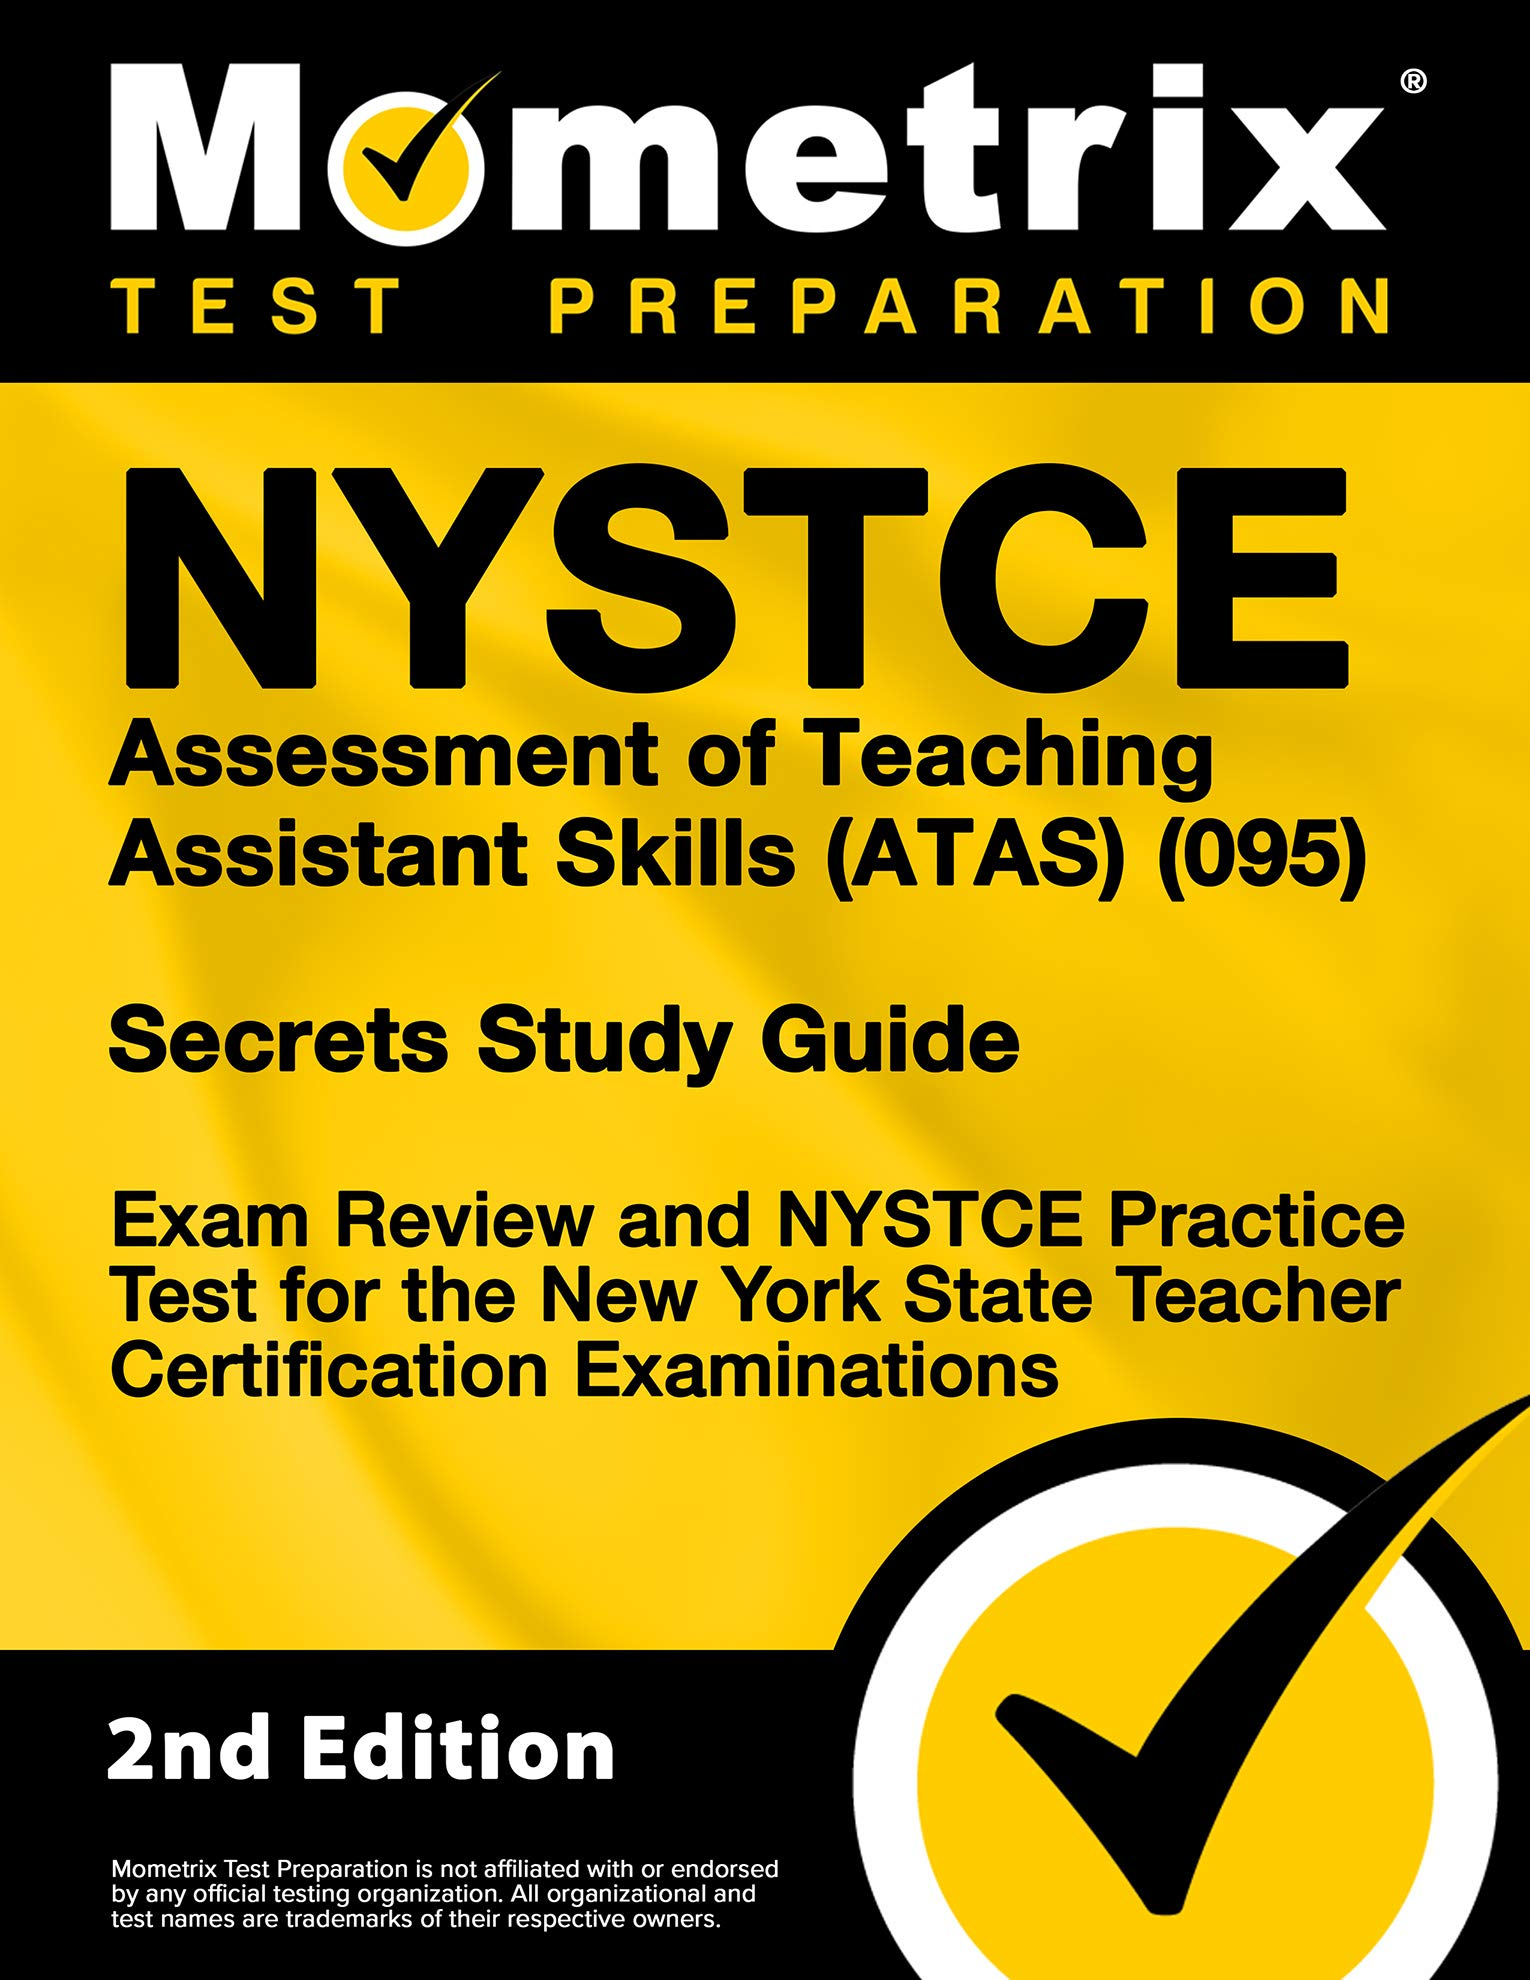 NYSTCE Assessment of Teaching Assistant Skills (ATAS) (095) Secrets Study Guide – Exam Review and NYSTCE Practice Test for the New York State Teacher Certification Examinations [2nd Edition]